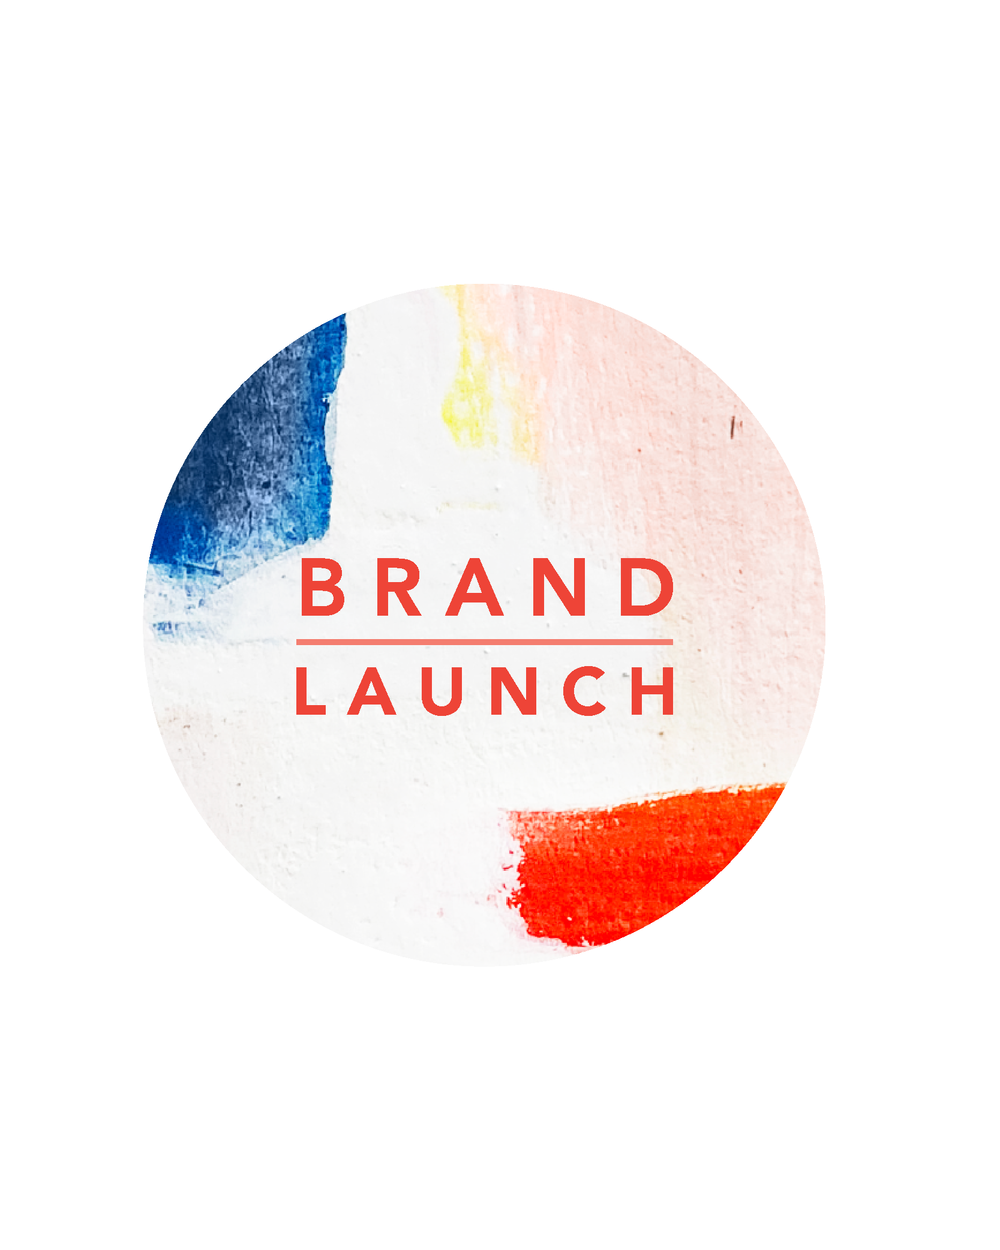 brandlaunch_brightenmade_branding_paint_abstract_colorful_artistic_personalbrand_navy_cream_coral_femaleowned_workshop8.png